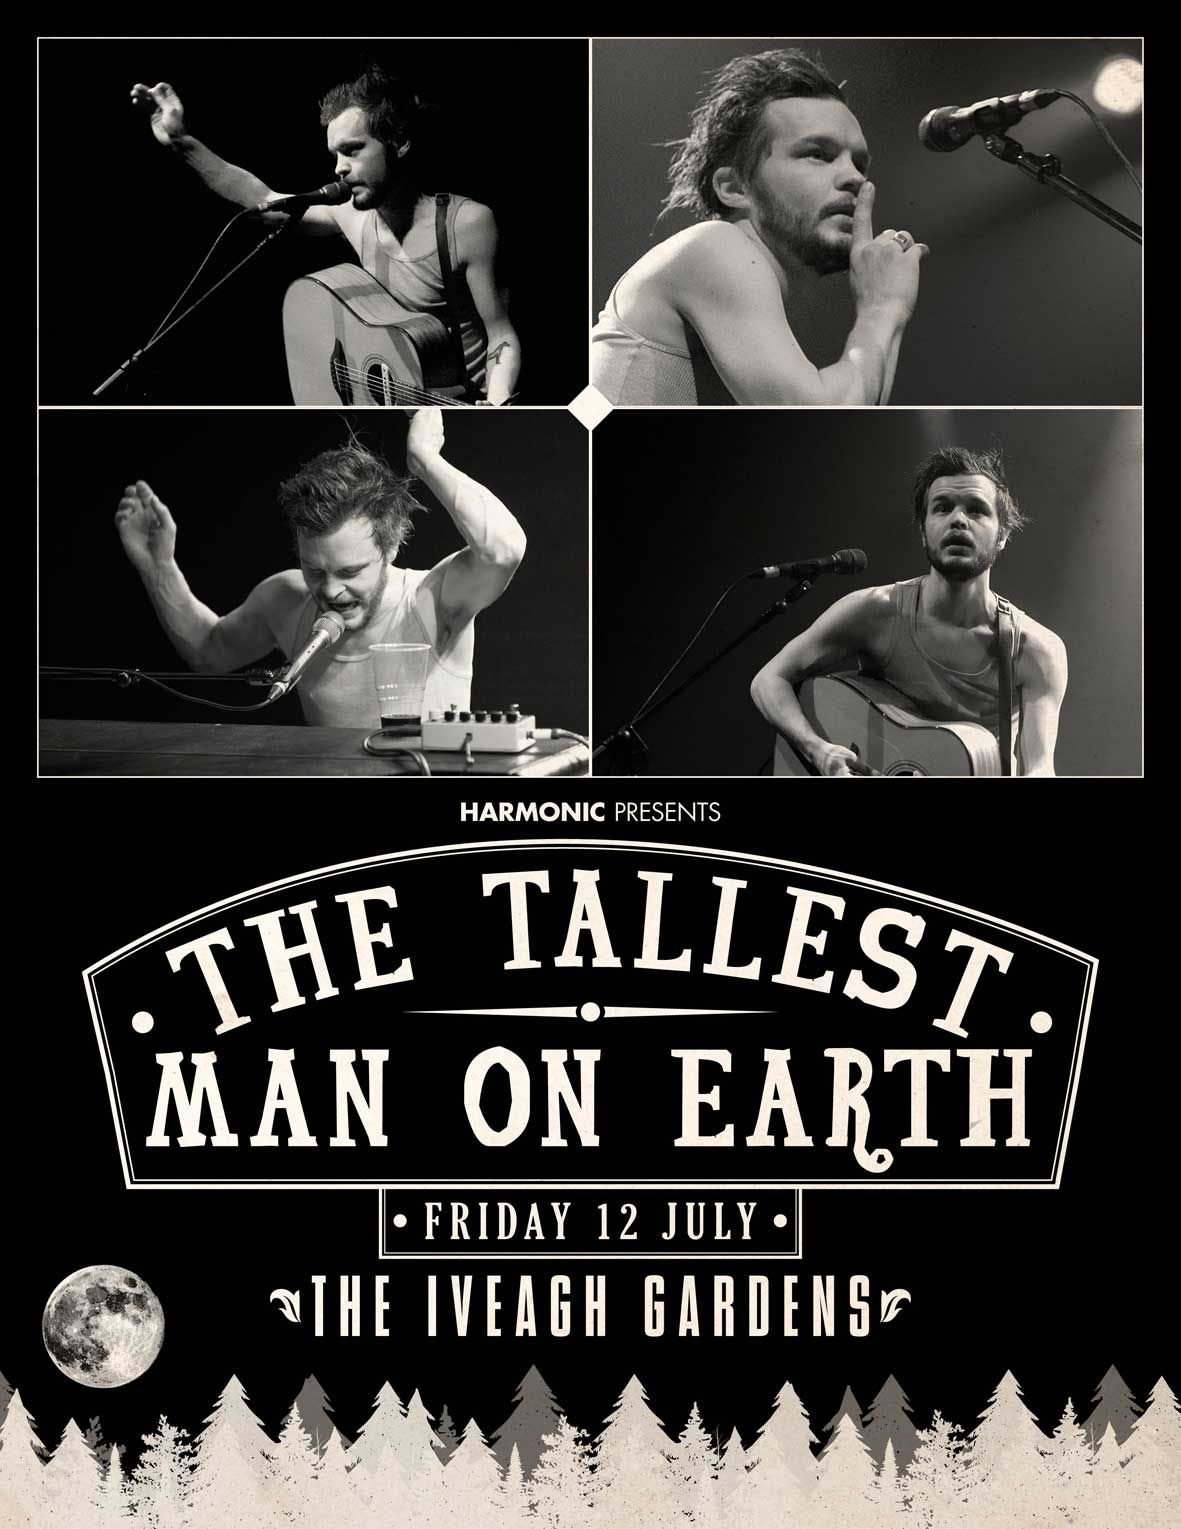 The Tallest Man On Earth & special guests The Iveagh Gardens, Dublin Friday 12 July 2013